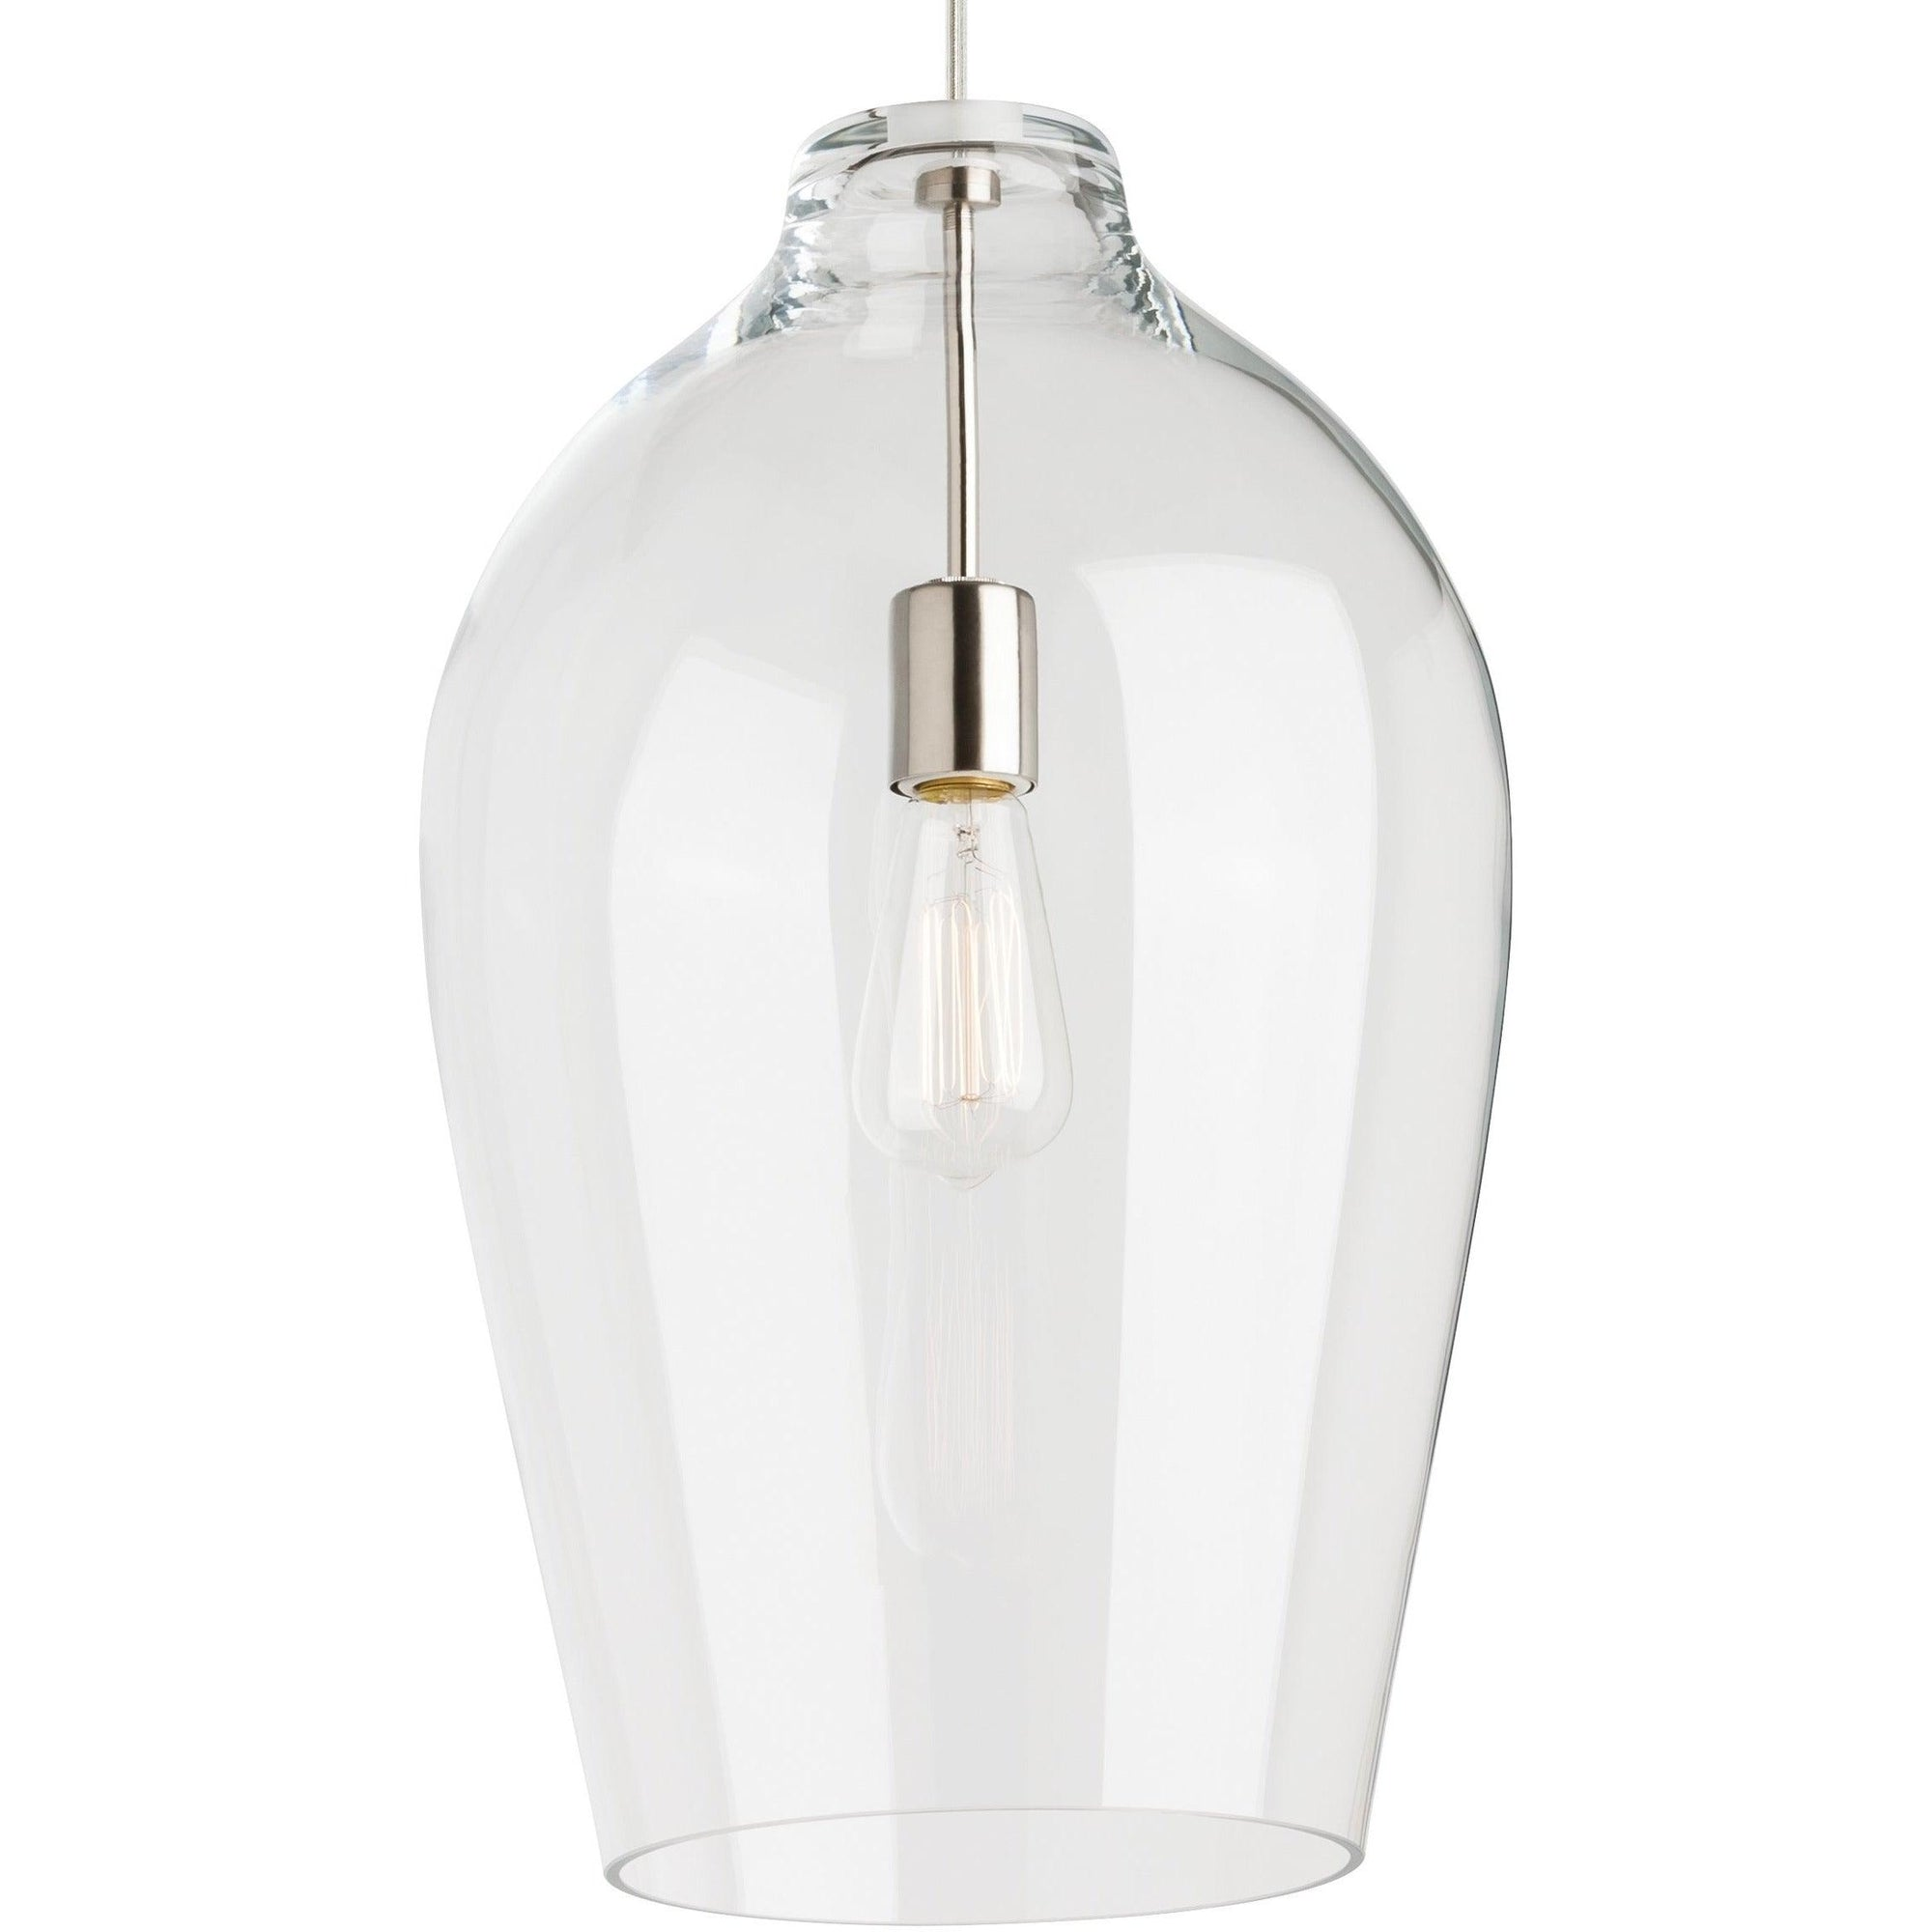 Tech Lighting - 700TDPRCPCS-LED927 - Pendant - Prescott - Satin Nickel